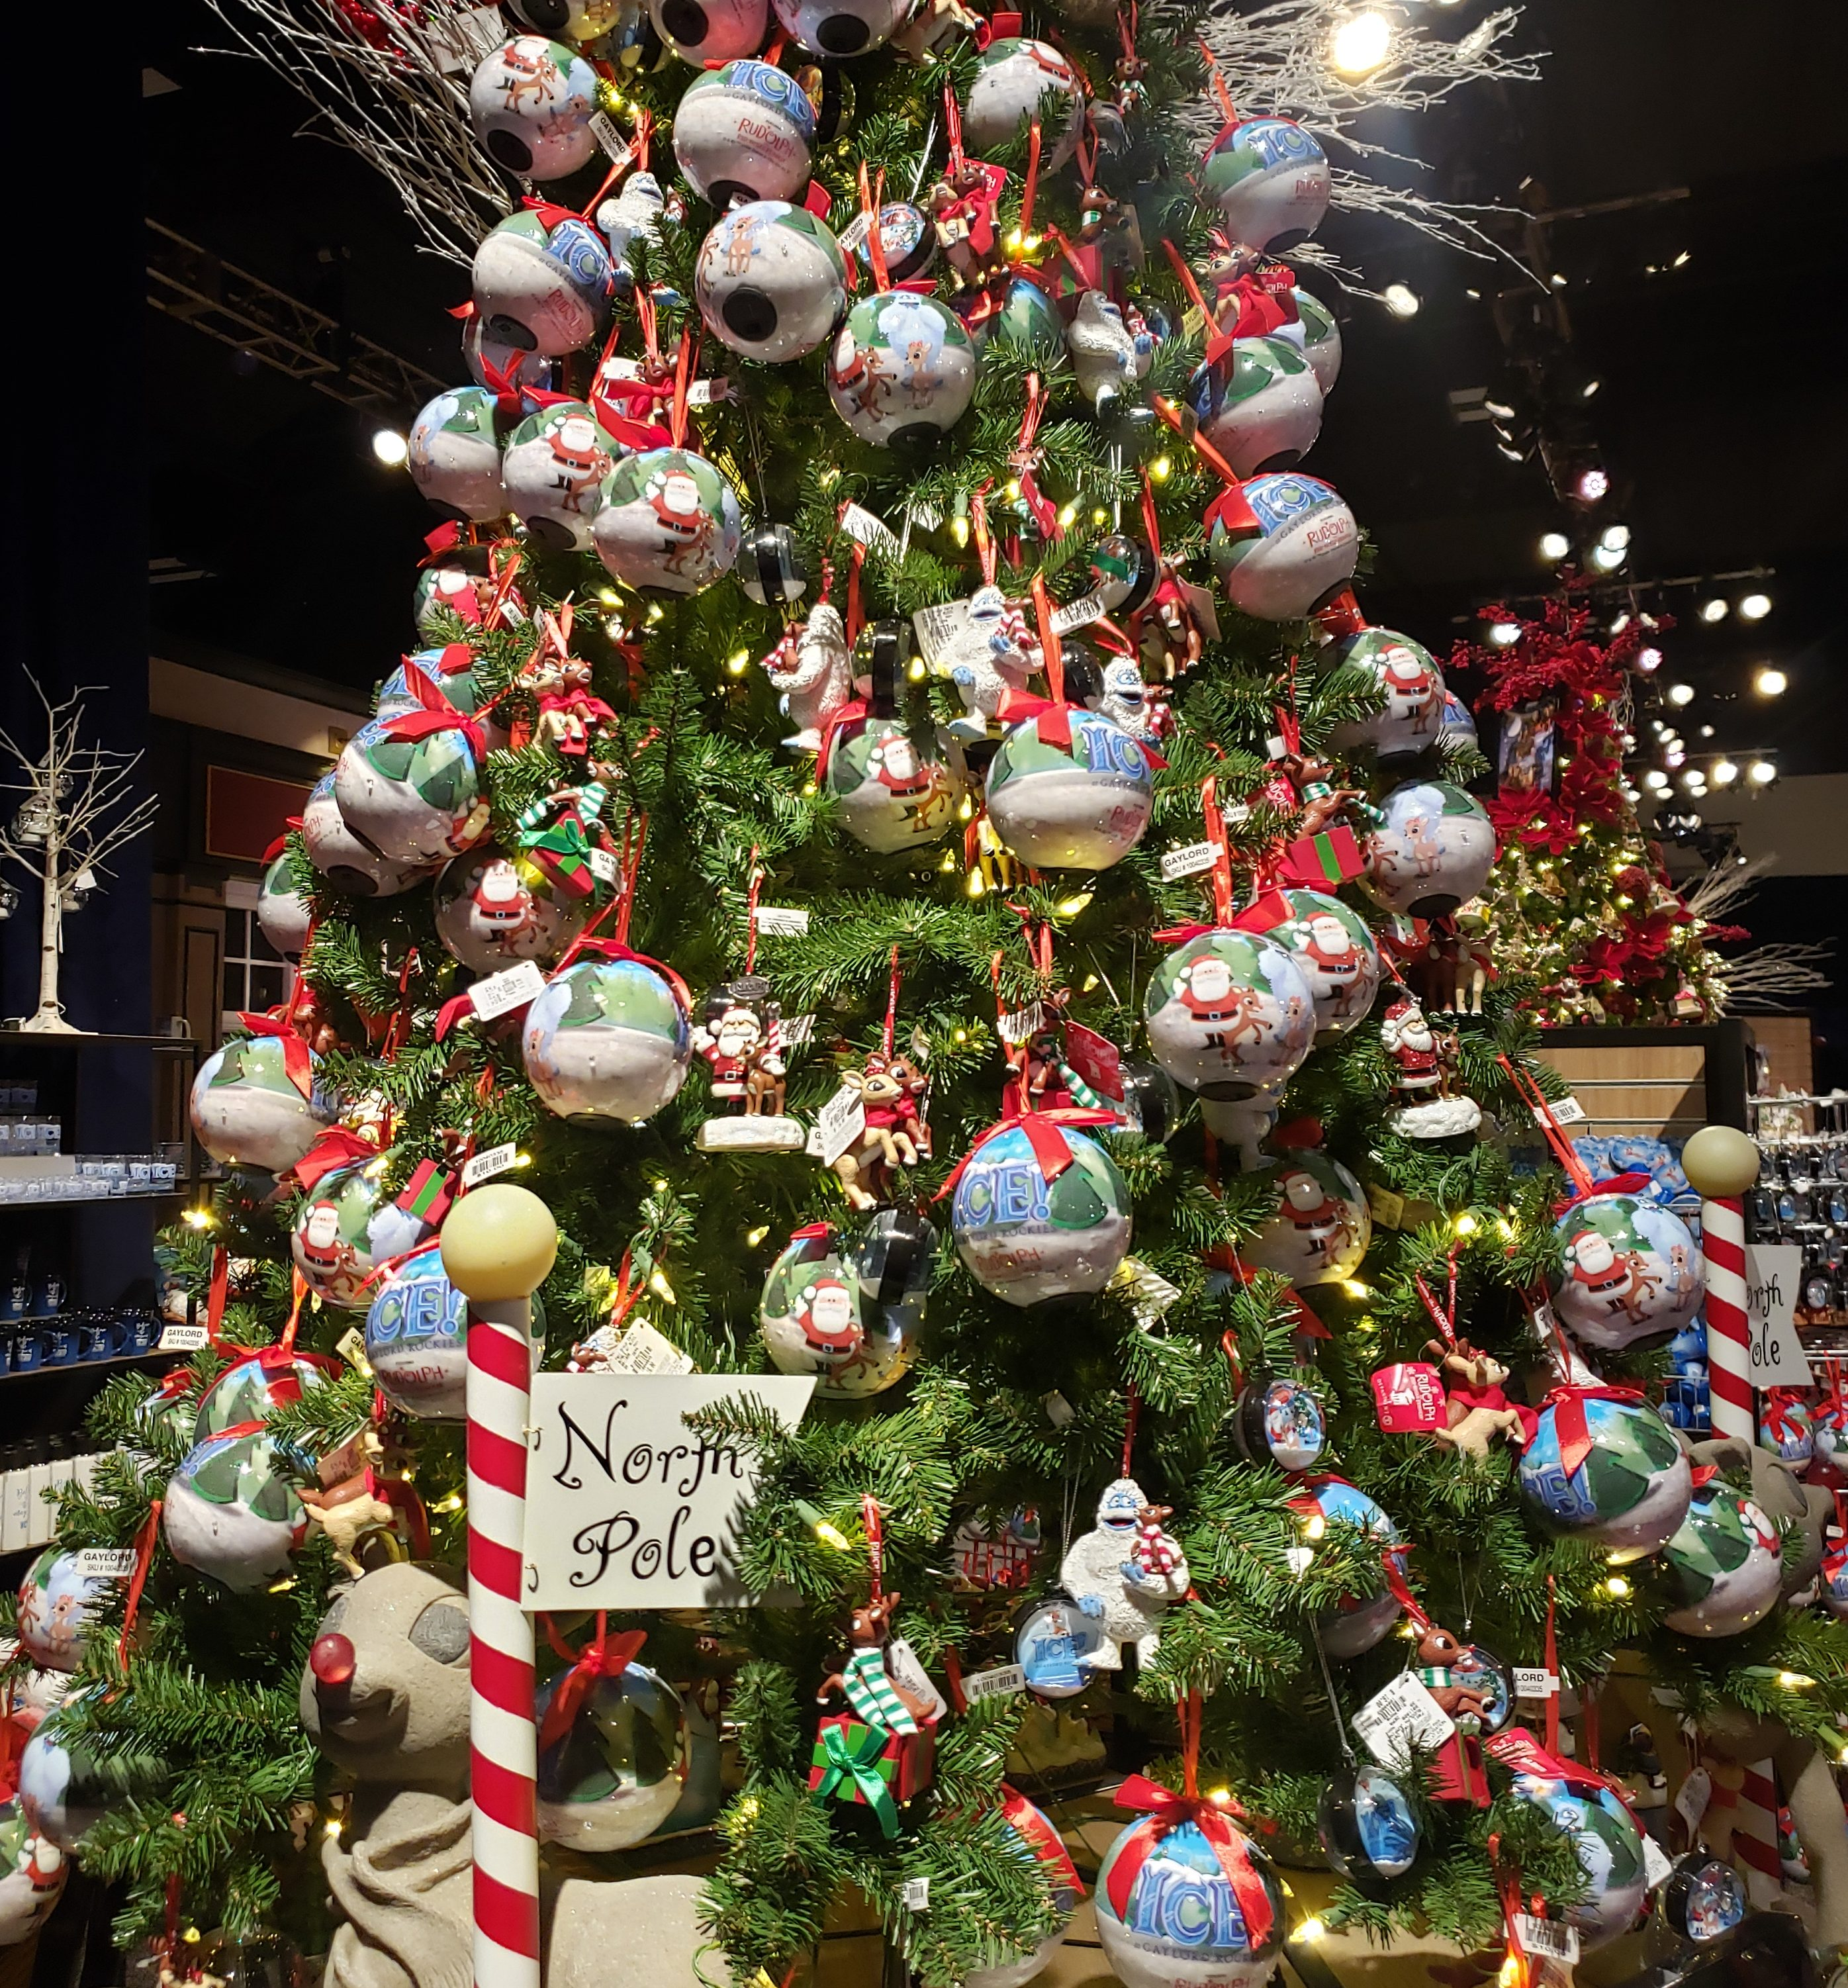 Christmas ornaments and decorations during Christmas at Gaylord of the Rockies